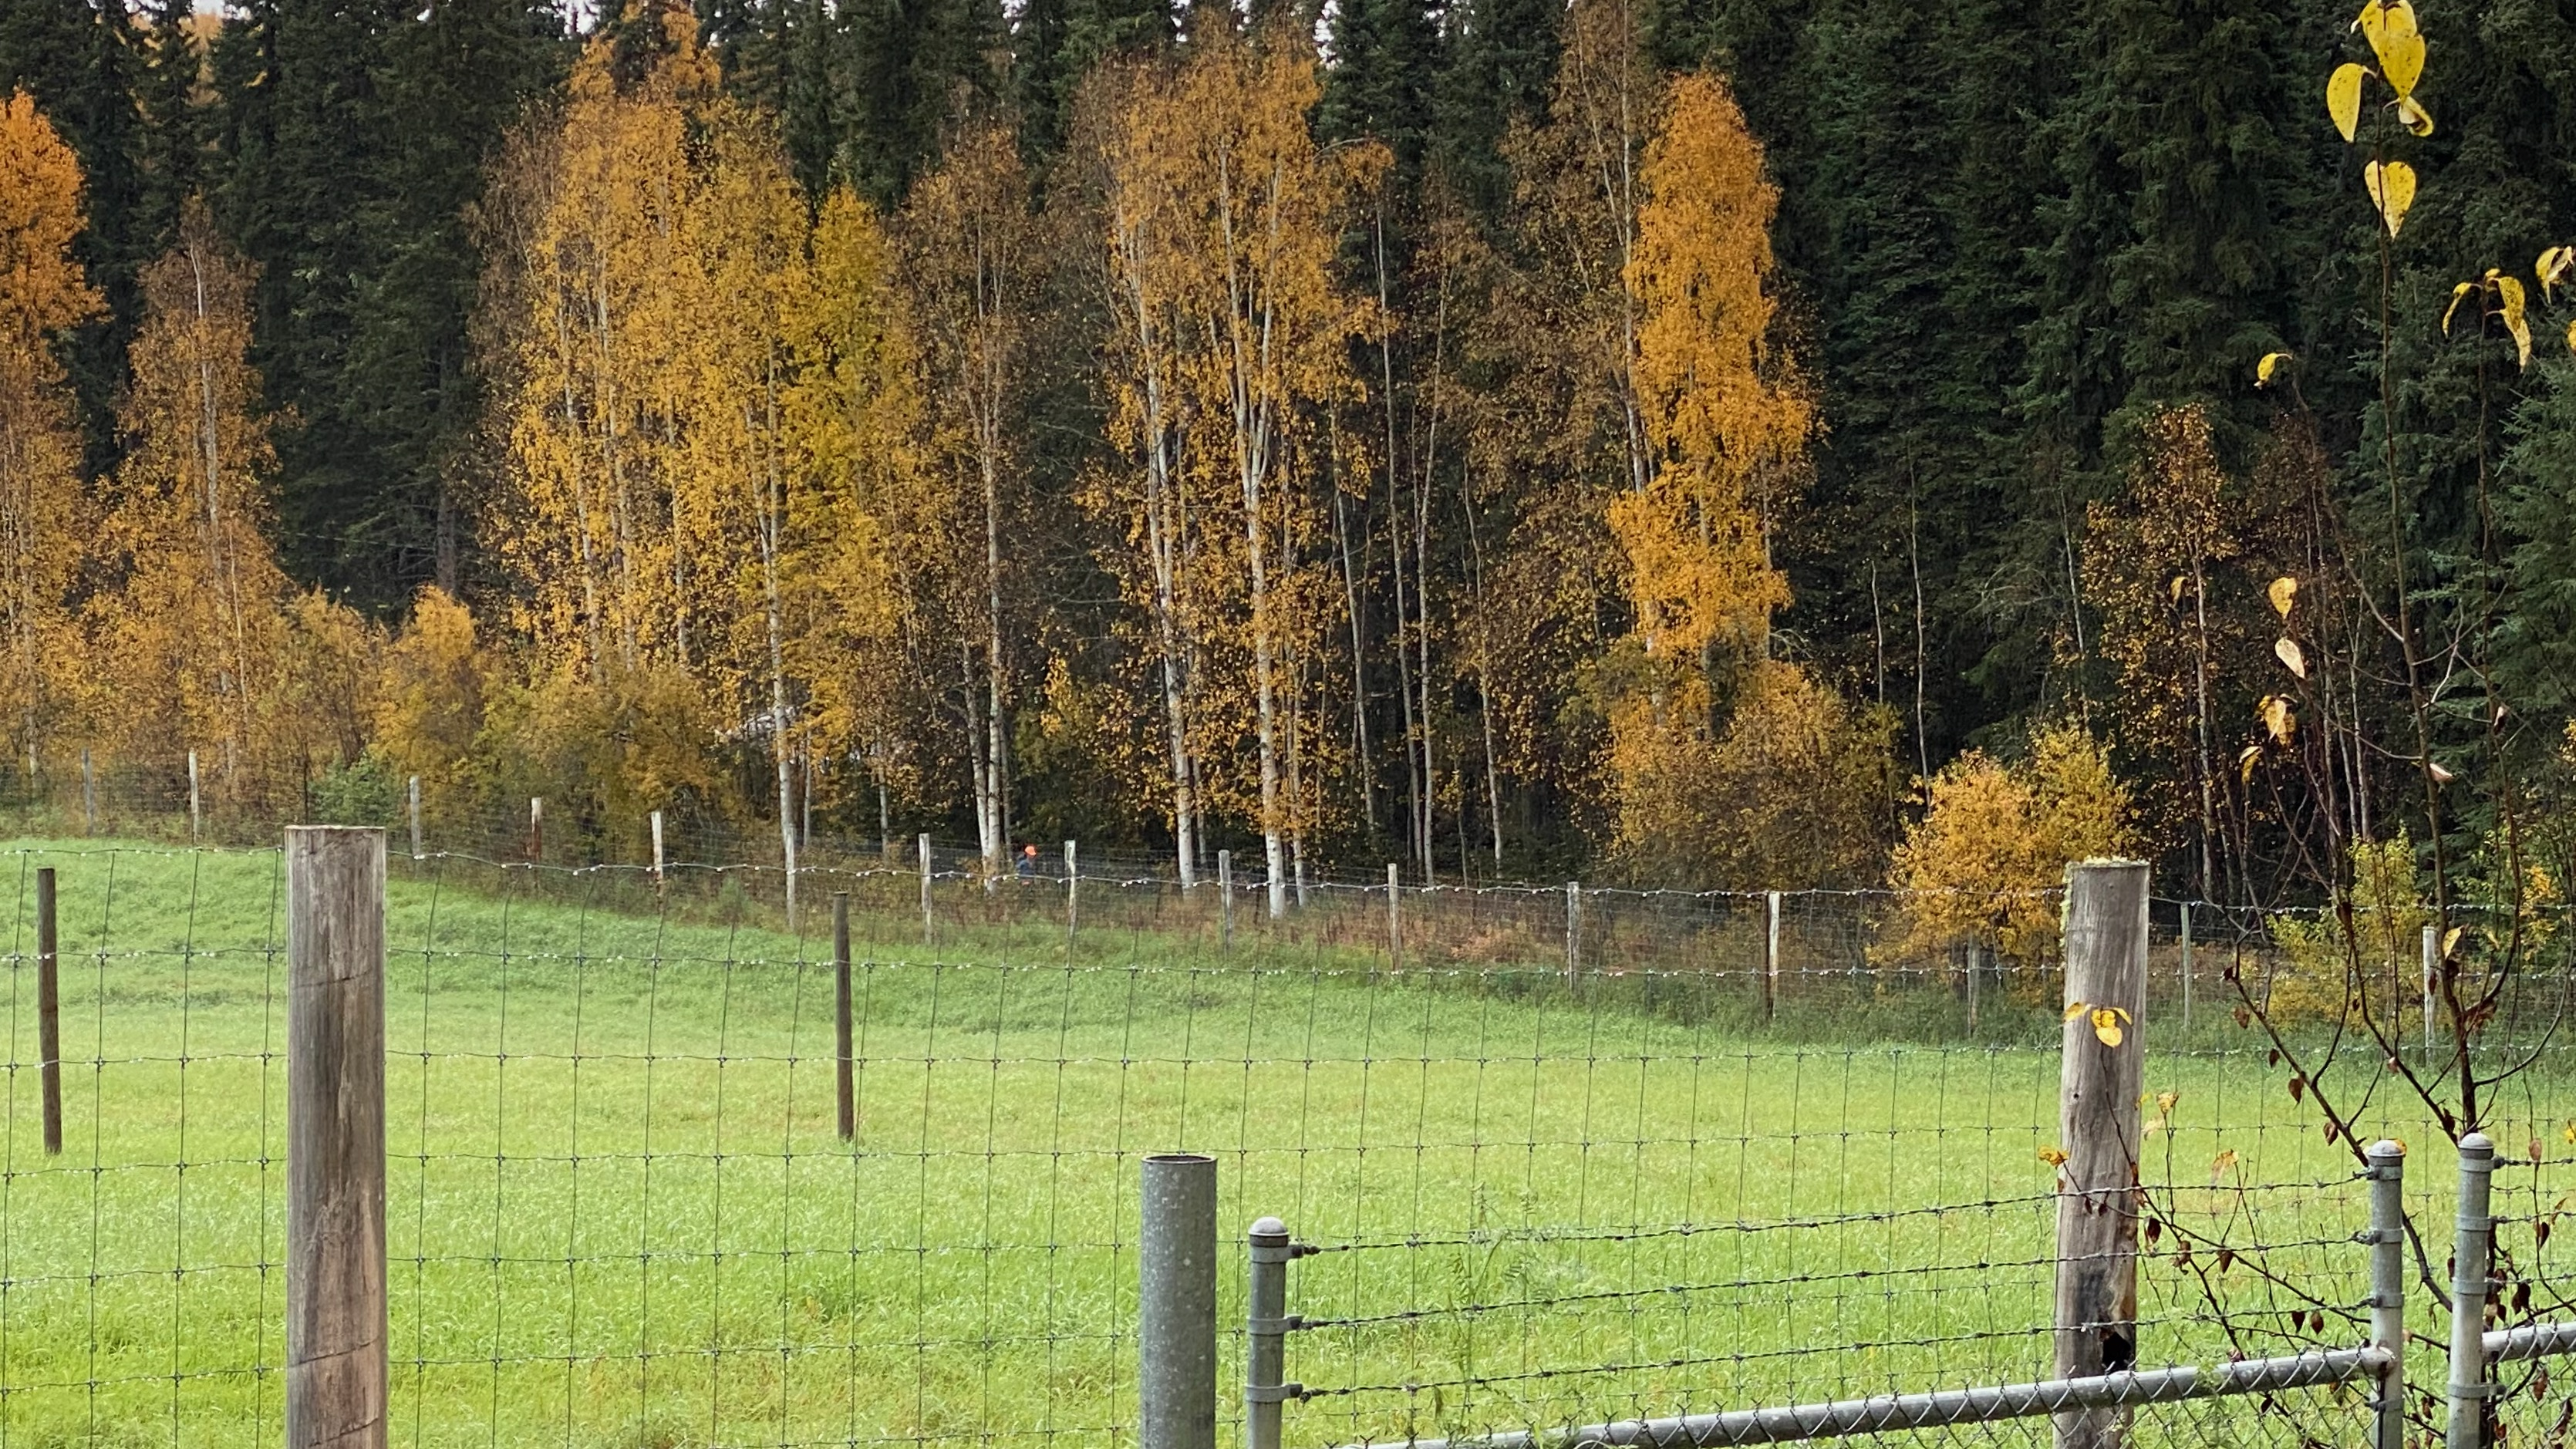 Along the fence at the muskox farm